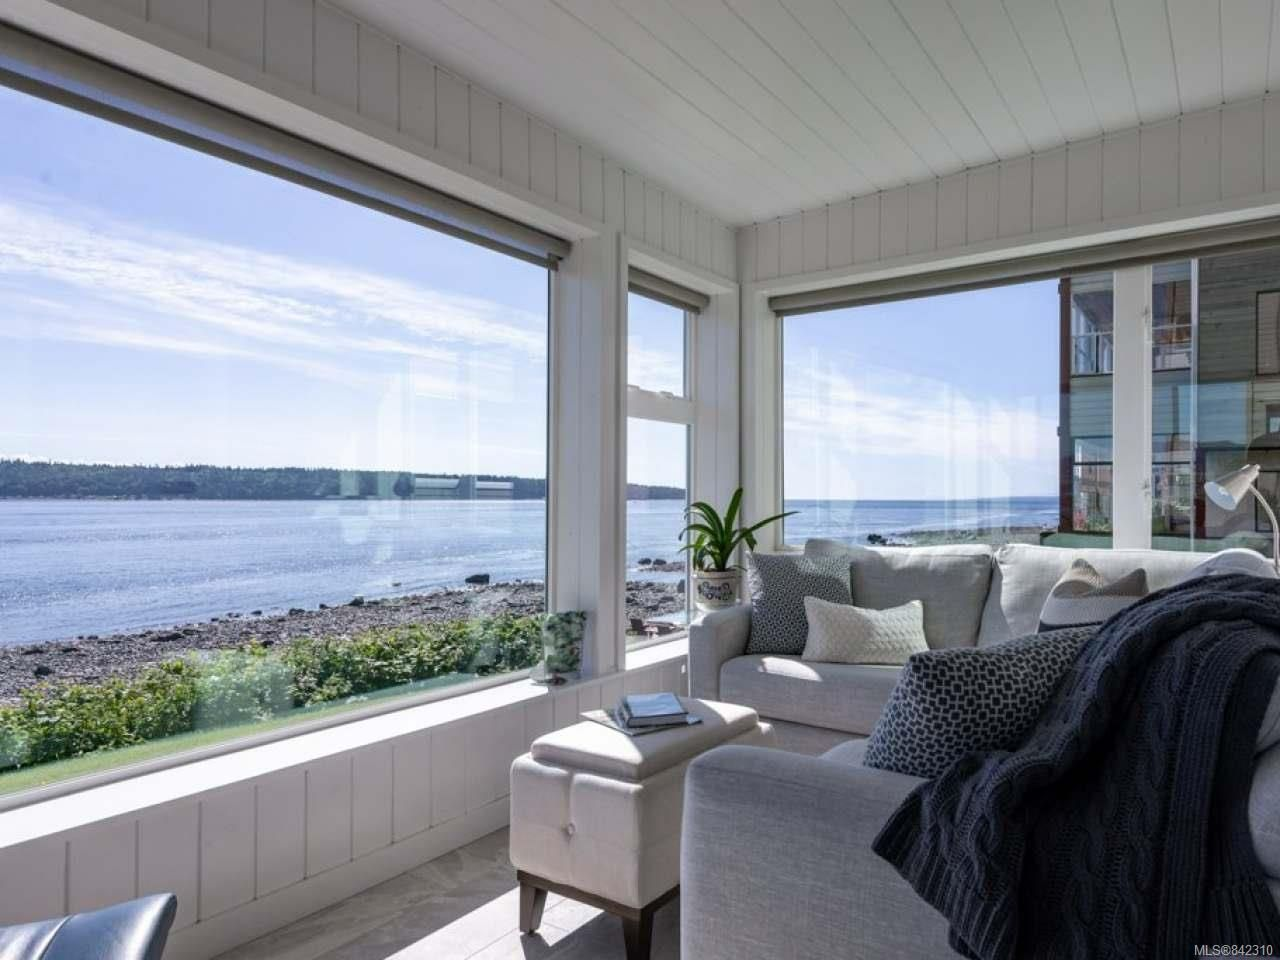 Main Photo: 104 539 Island Hwy in CAMPBELL RIVER: CR Campbell River Central Condo for sale (Campbell River)  : MLS®# 842310